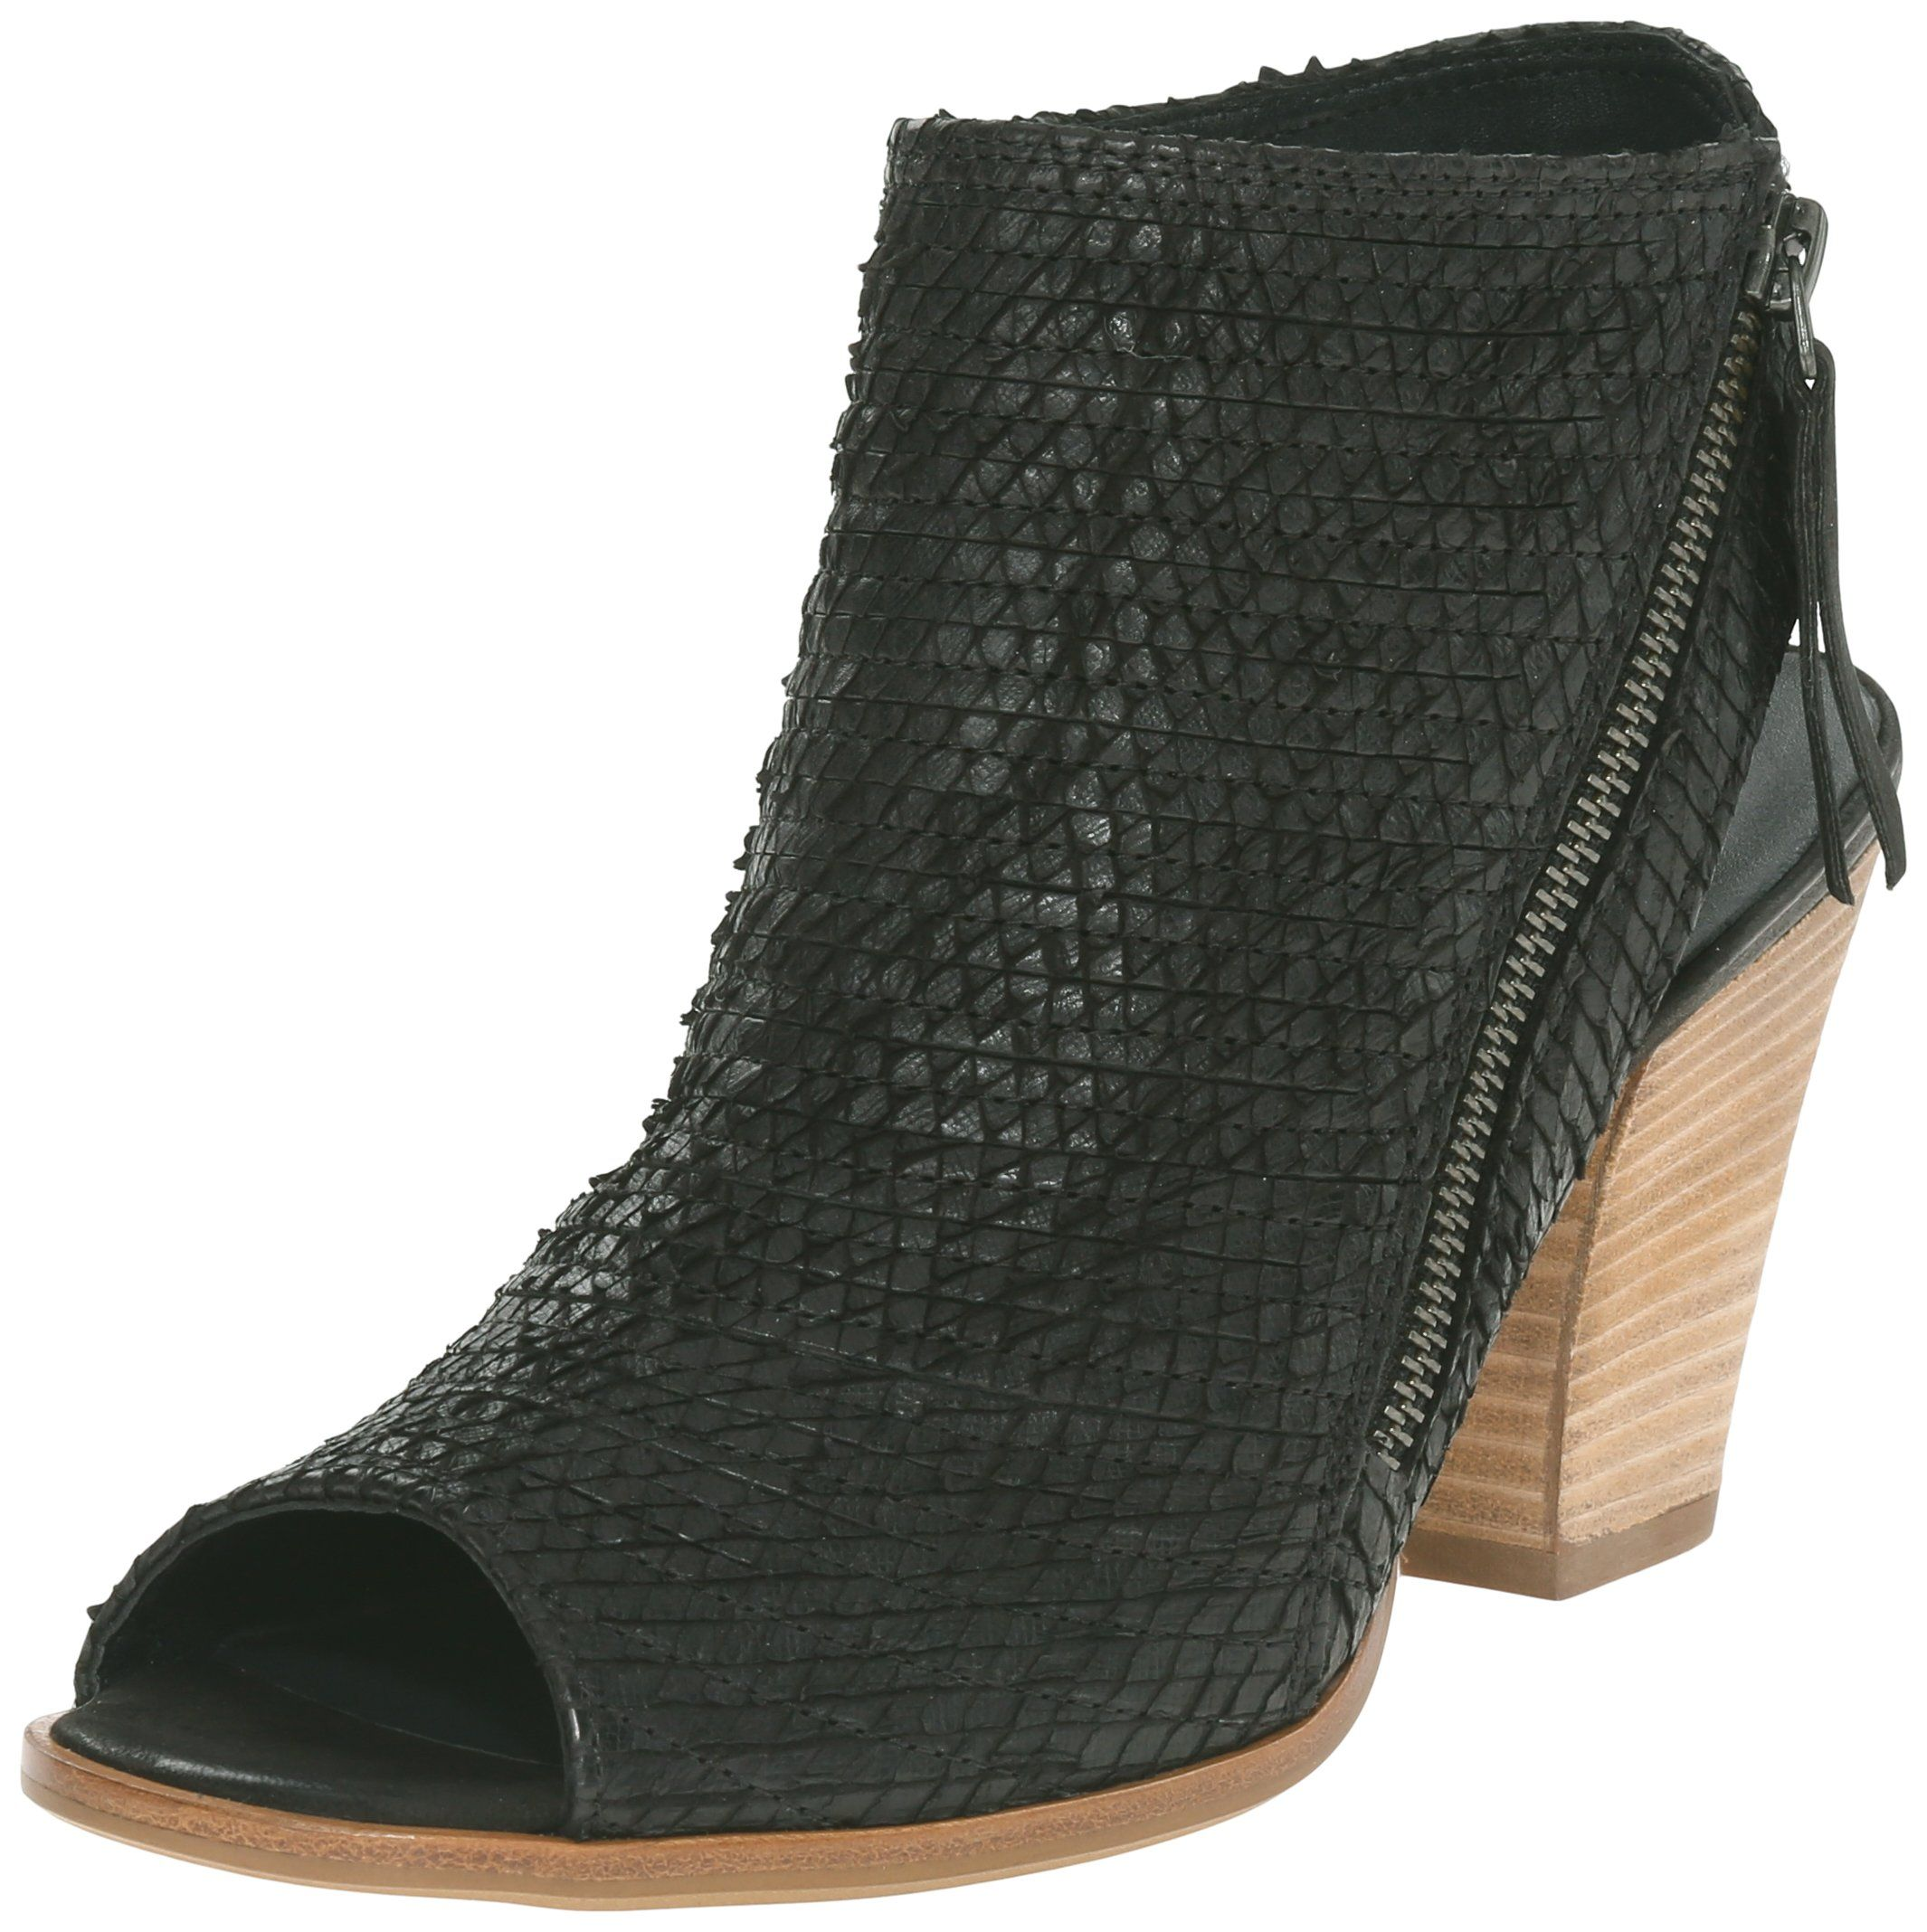 49b7f3aec340 Open-toe bootie with textured-leather upper featuring lateral-side zip  closure and open heel. Stacked chunky heel. Paul Green Womens Alexandra  Dress Sandal ...